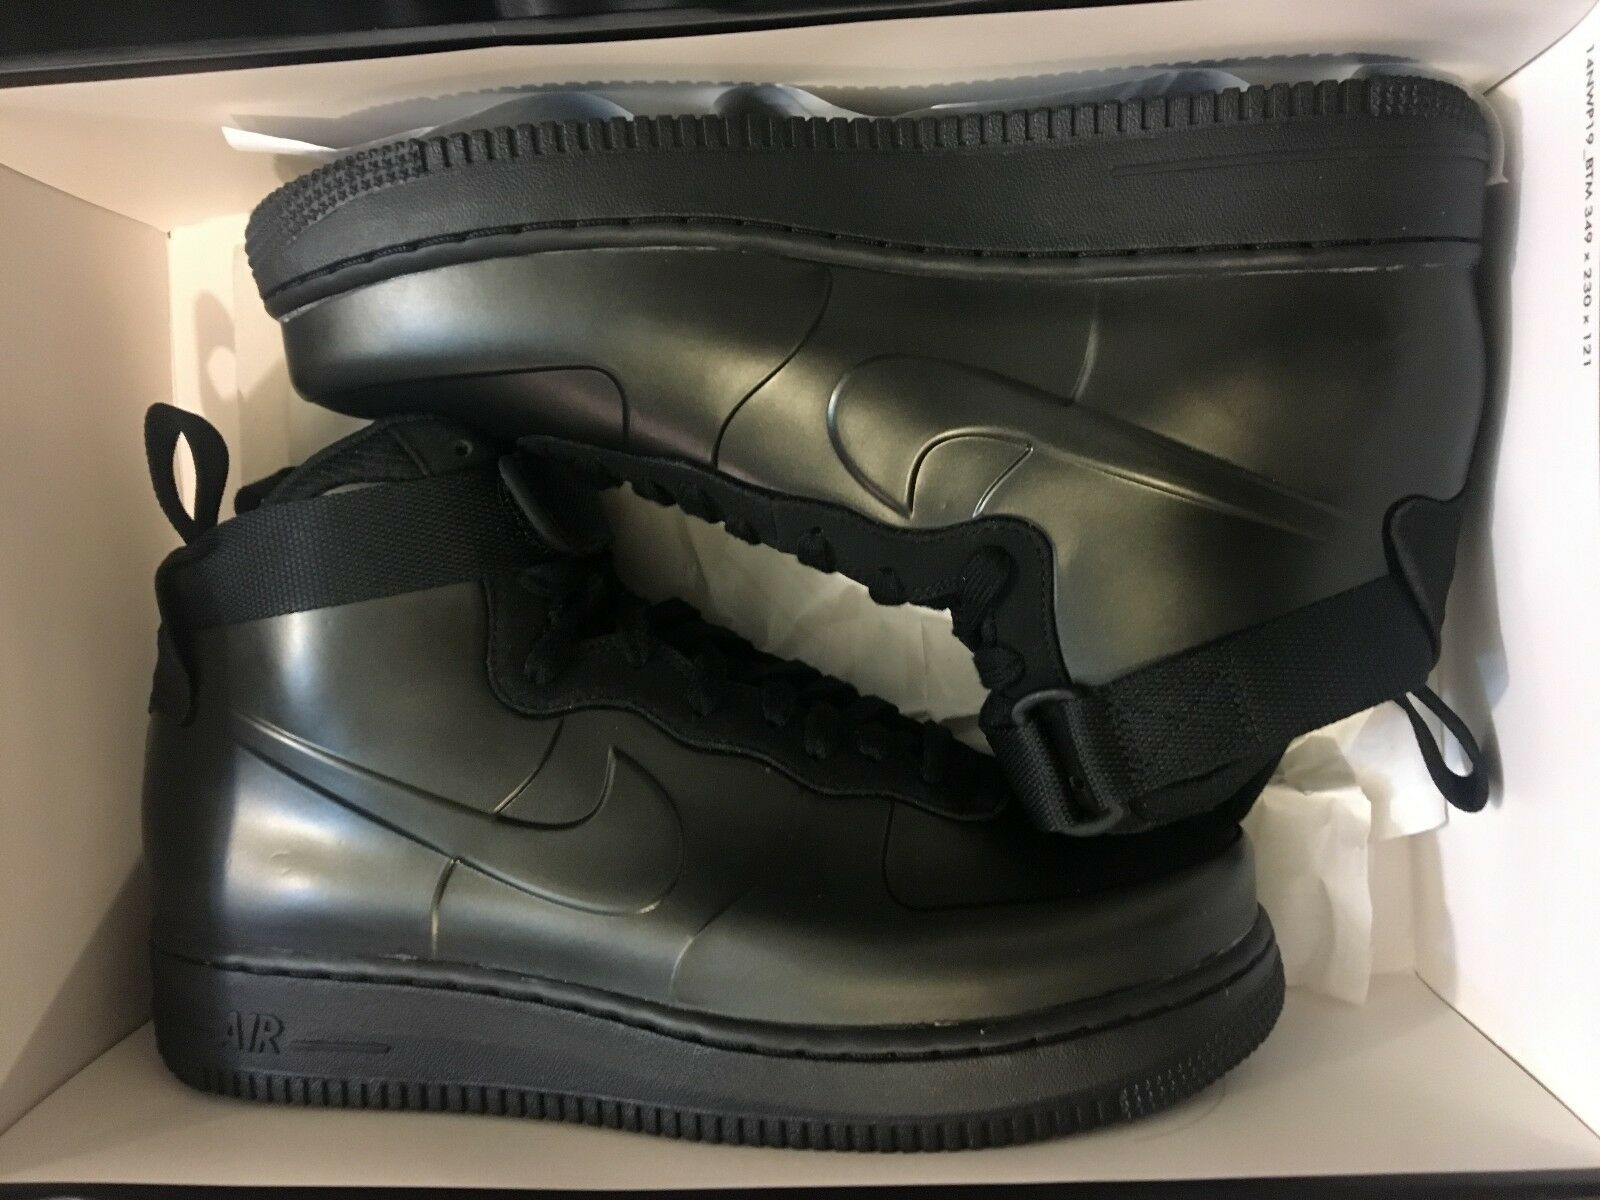 Nuove nike air force 1 foamposite cup af1 ciao cinghia blk scarpa ah6771-001 uomini 8